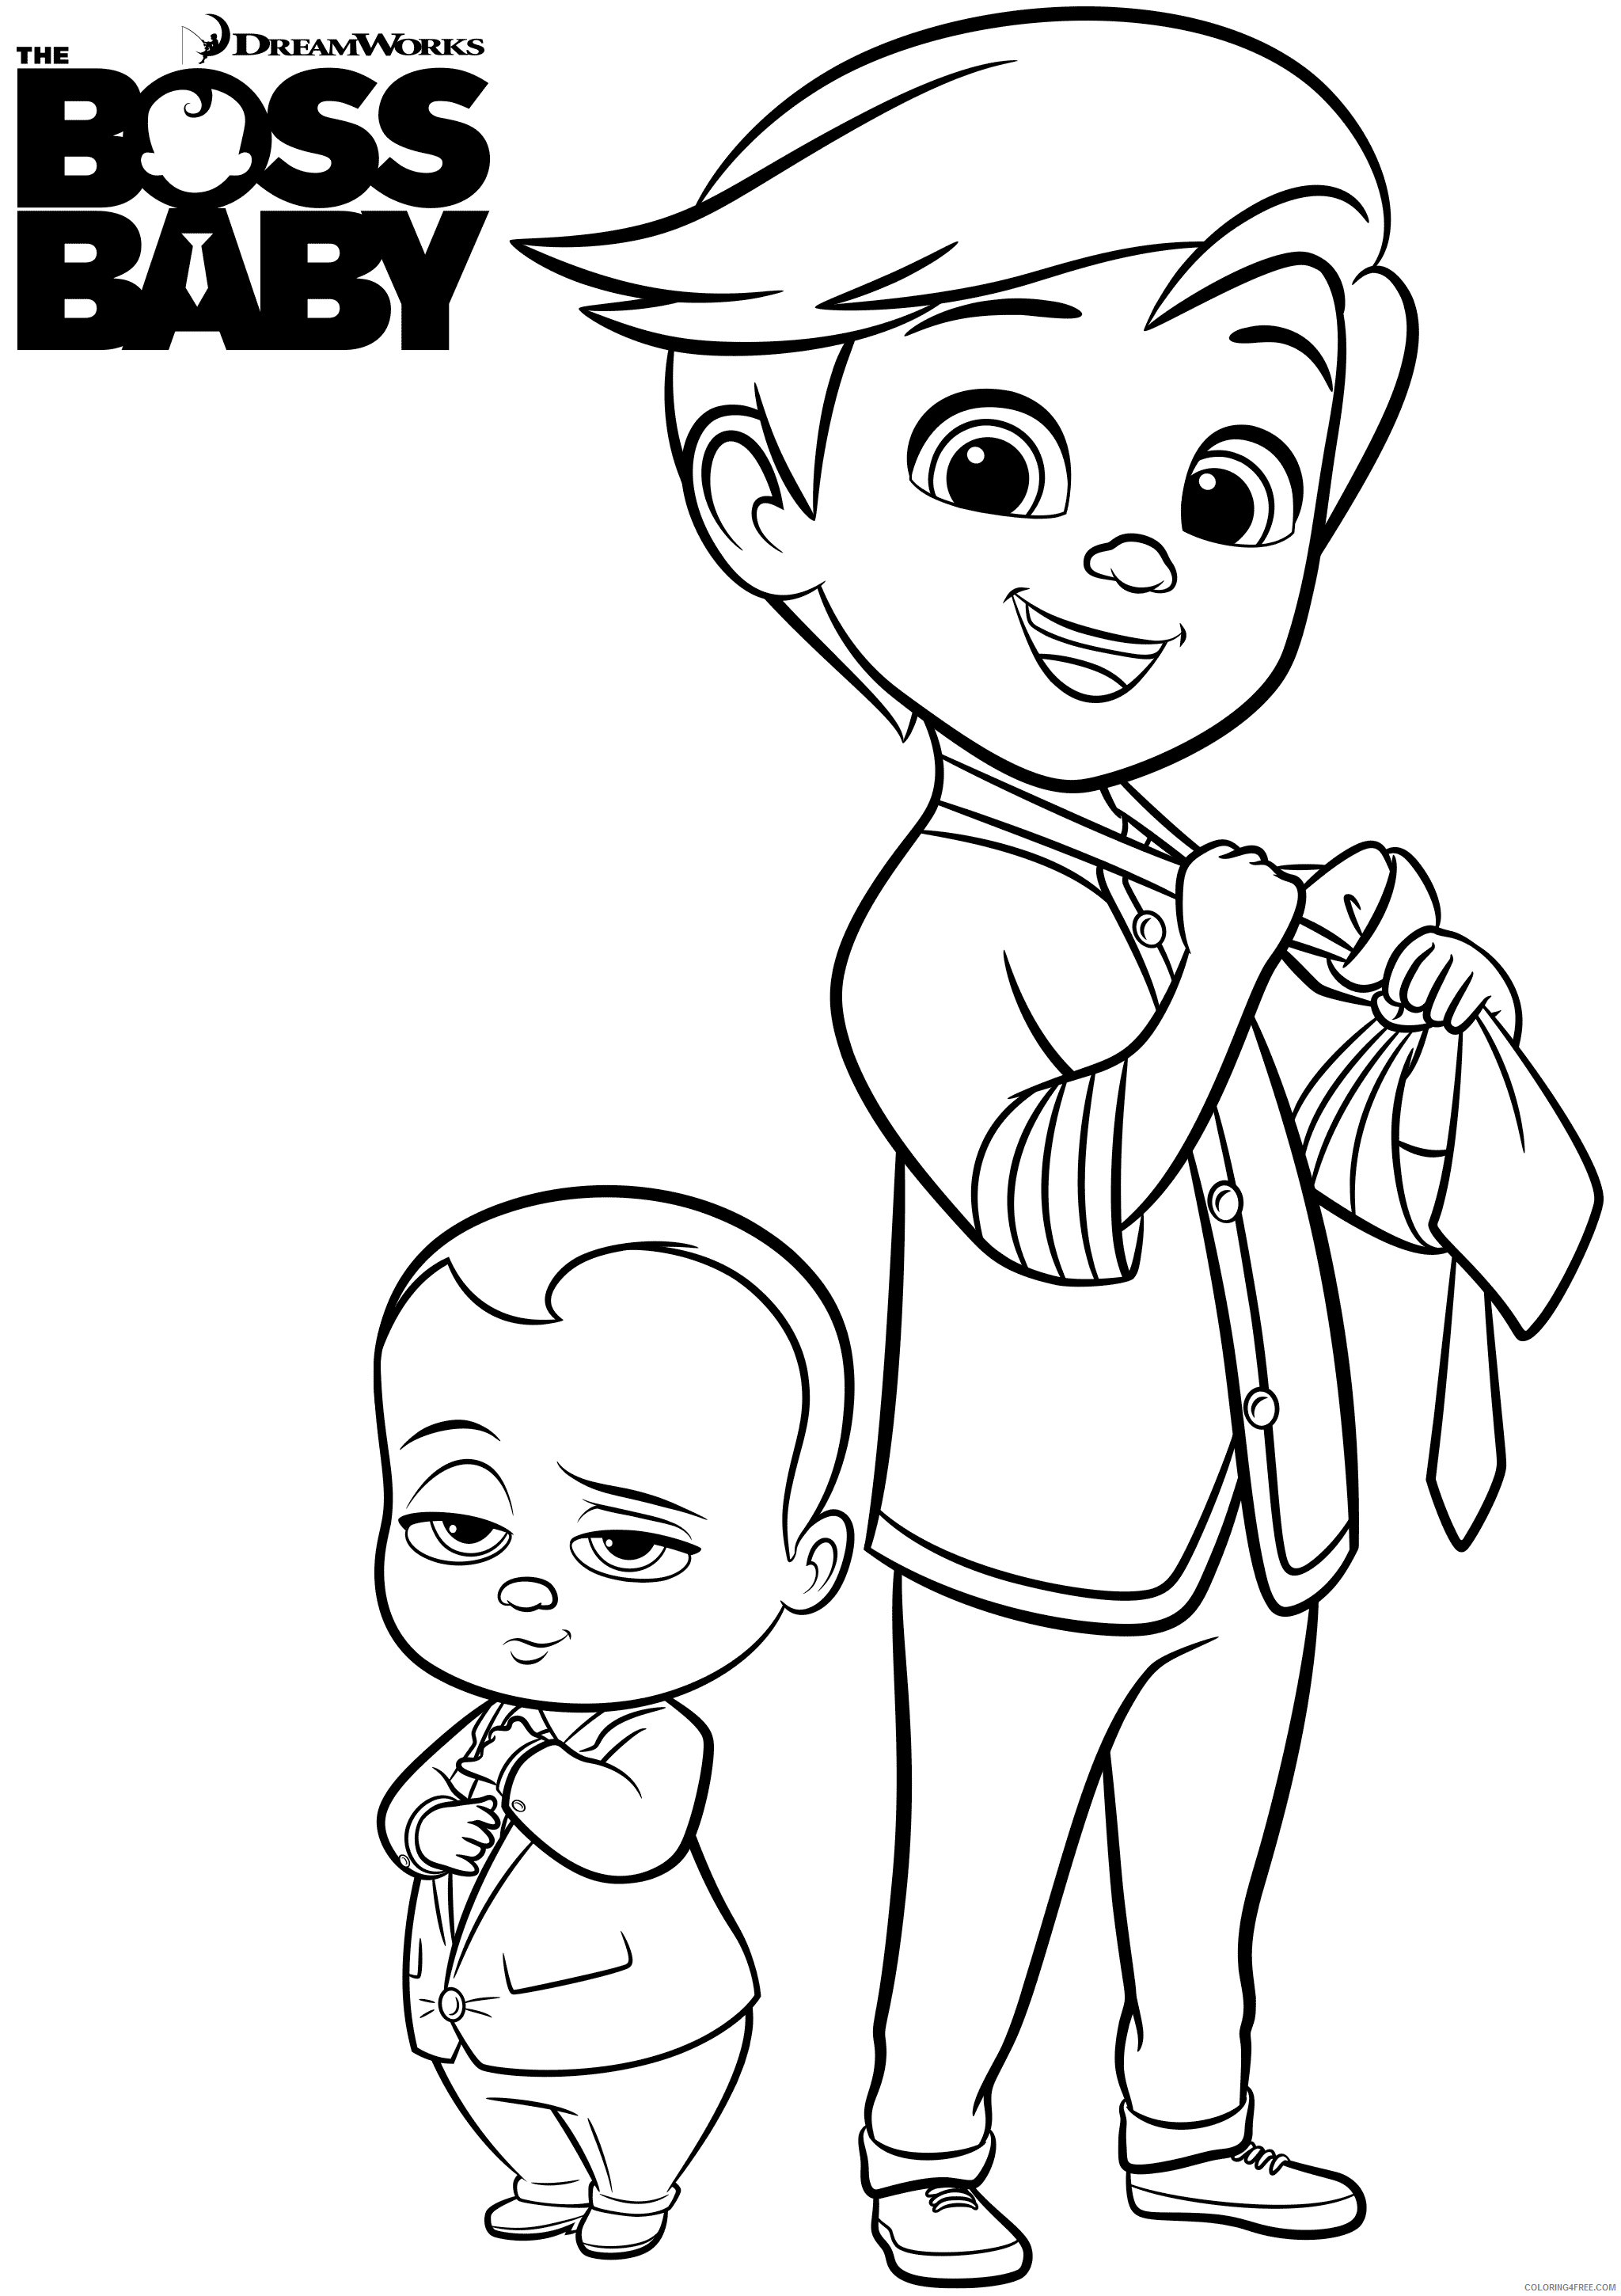 Boss Baby Coloring Pages TV Film boss baby and tim a4 Printable 2020 01249 Coloring4free